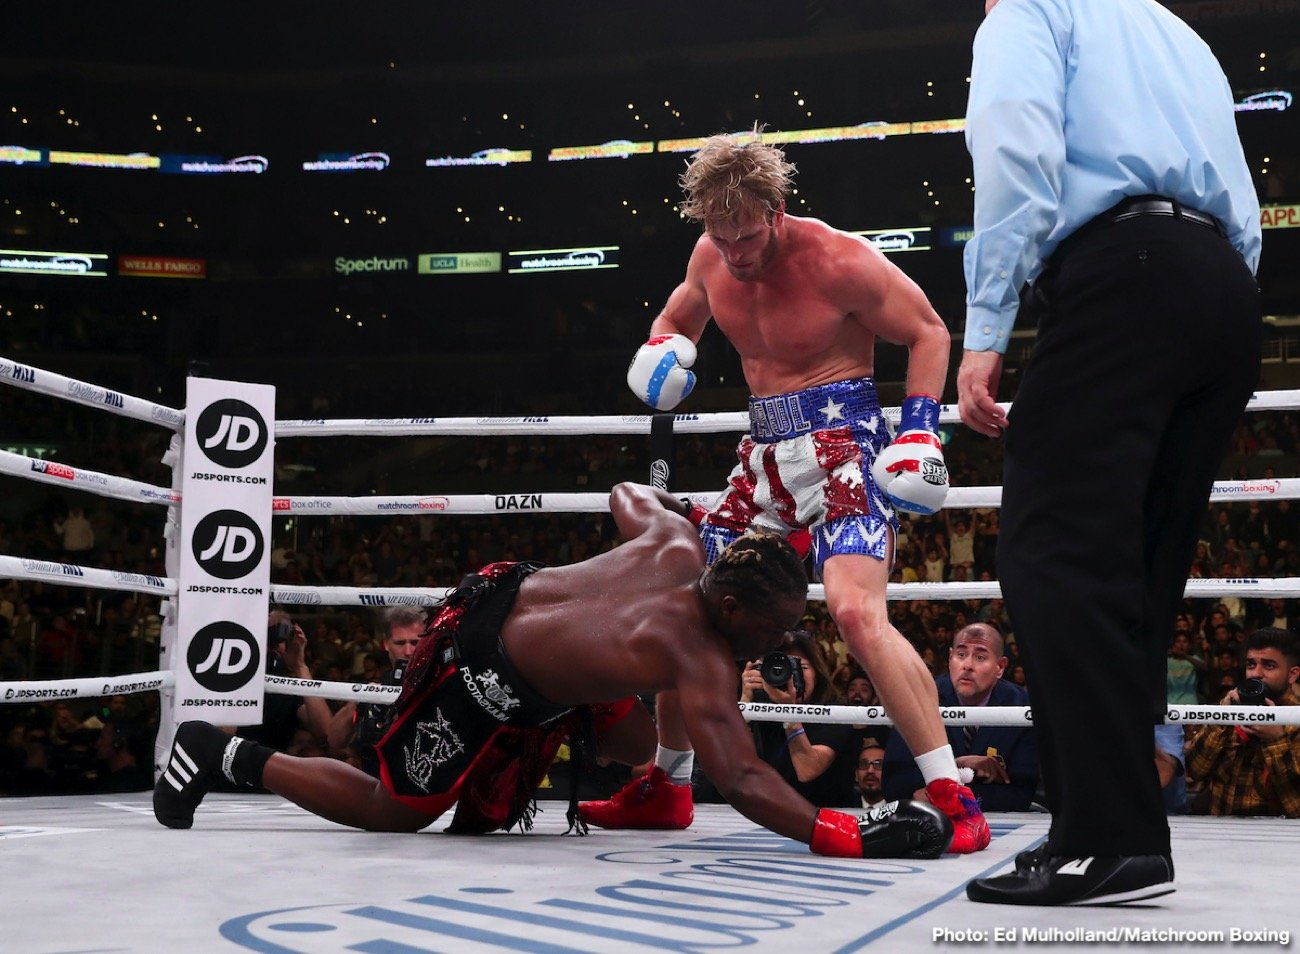 Billy Joe Saunders - KSI out-hustled Logan Paul in defeating him by a six round split decision in their celebrity match involving two huge Youtube stars on Saturday night on DAZN at the Staples Center in Los Angeles, California. Both cruiserweight were making their debut tonight. KSI (1-0) wanted it more, and was willing to let his hands go. The scores were 56-55 for Paul, and 57-54, 56-55 KSI.